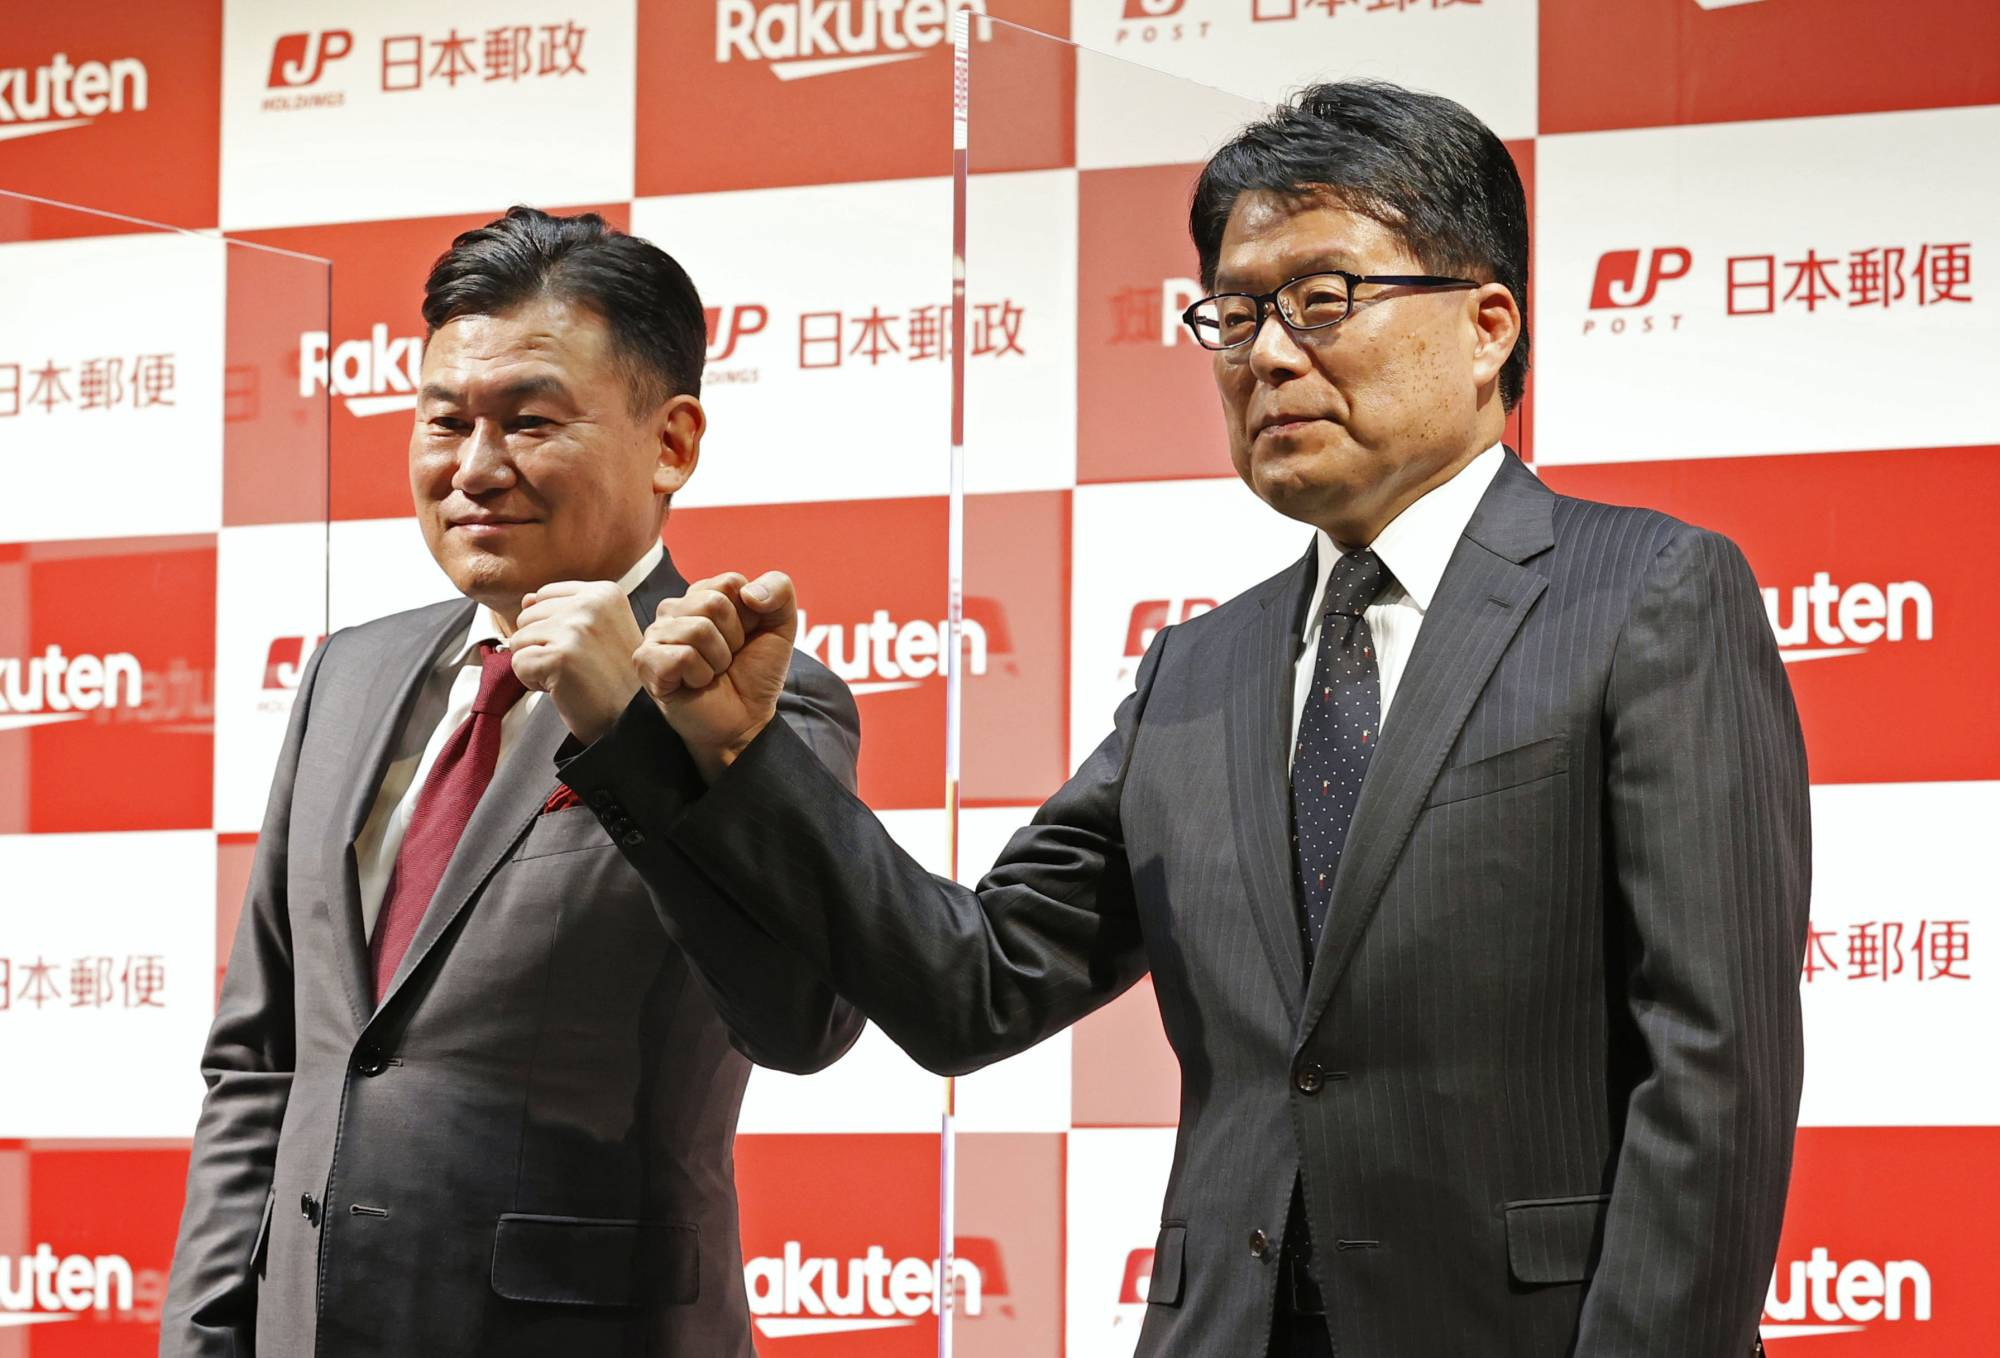 Rakuten Inc. Chairman and Chief Executive Officer Hiroshi Mikitani (left) and Japan Post Holdings Co. President Hiroya Masuda pose for a photo at a news conference in Tokyo on Thursday. | KYODO